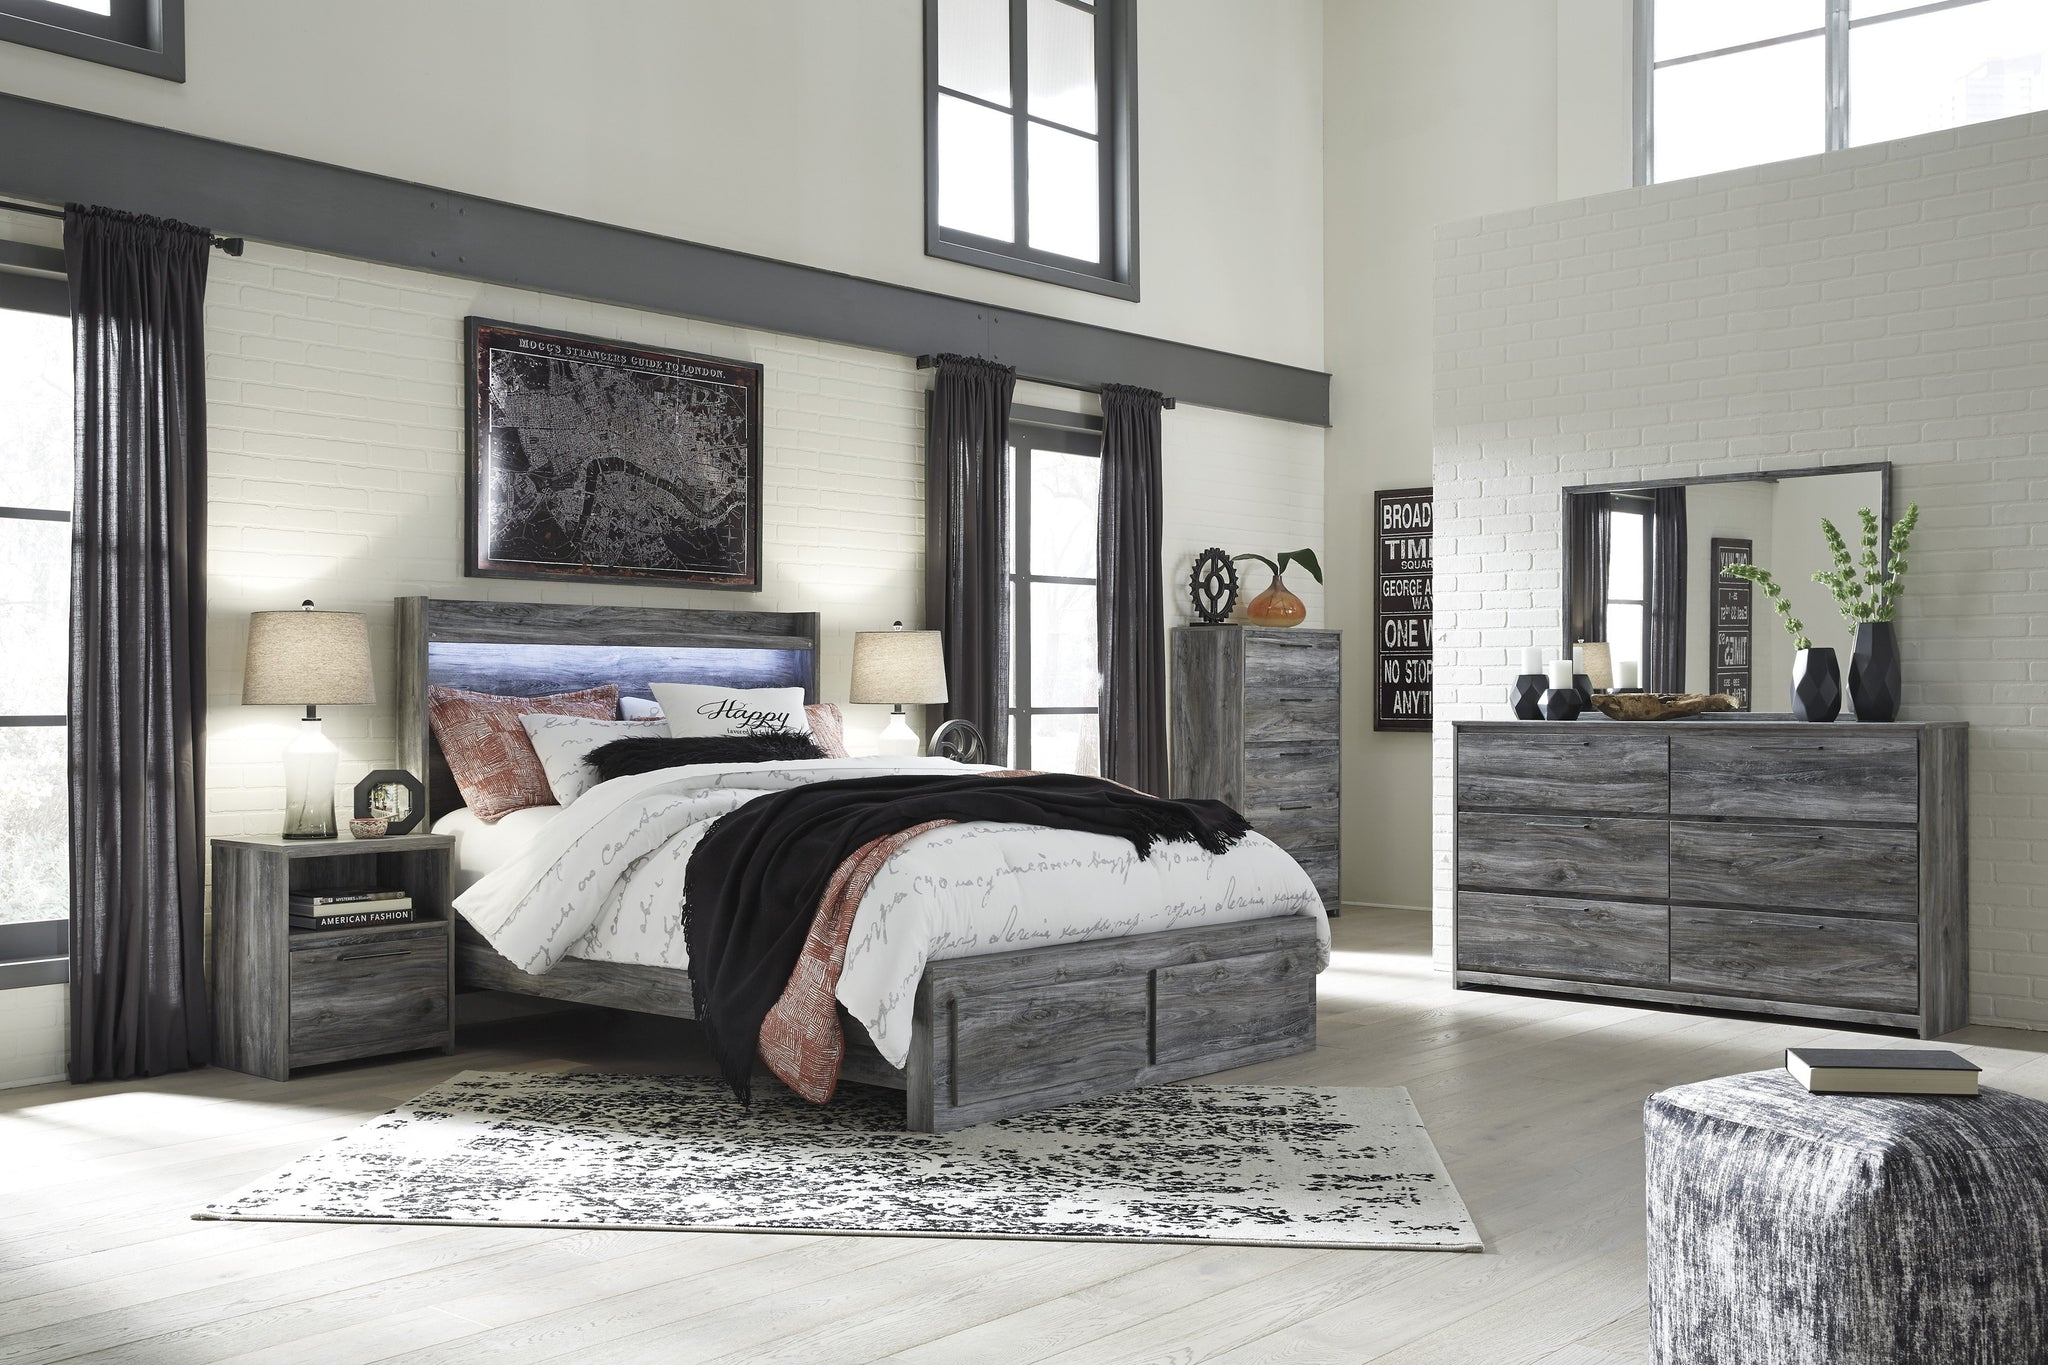 Baystorm Signature Design 5-Piece Bedroom Set with 2 Storage Drawers image